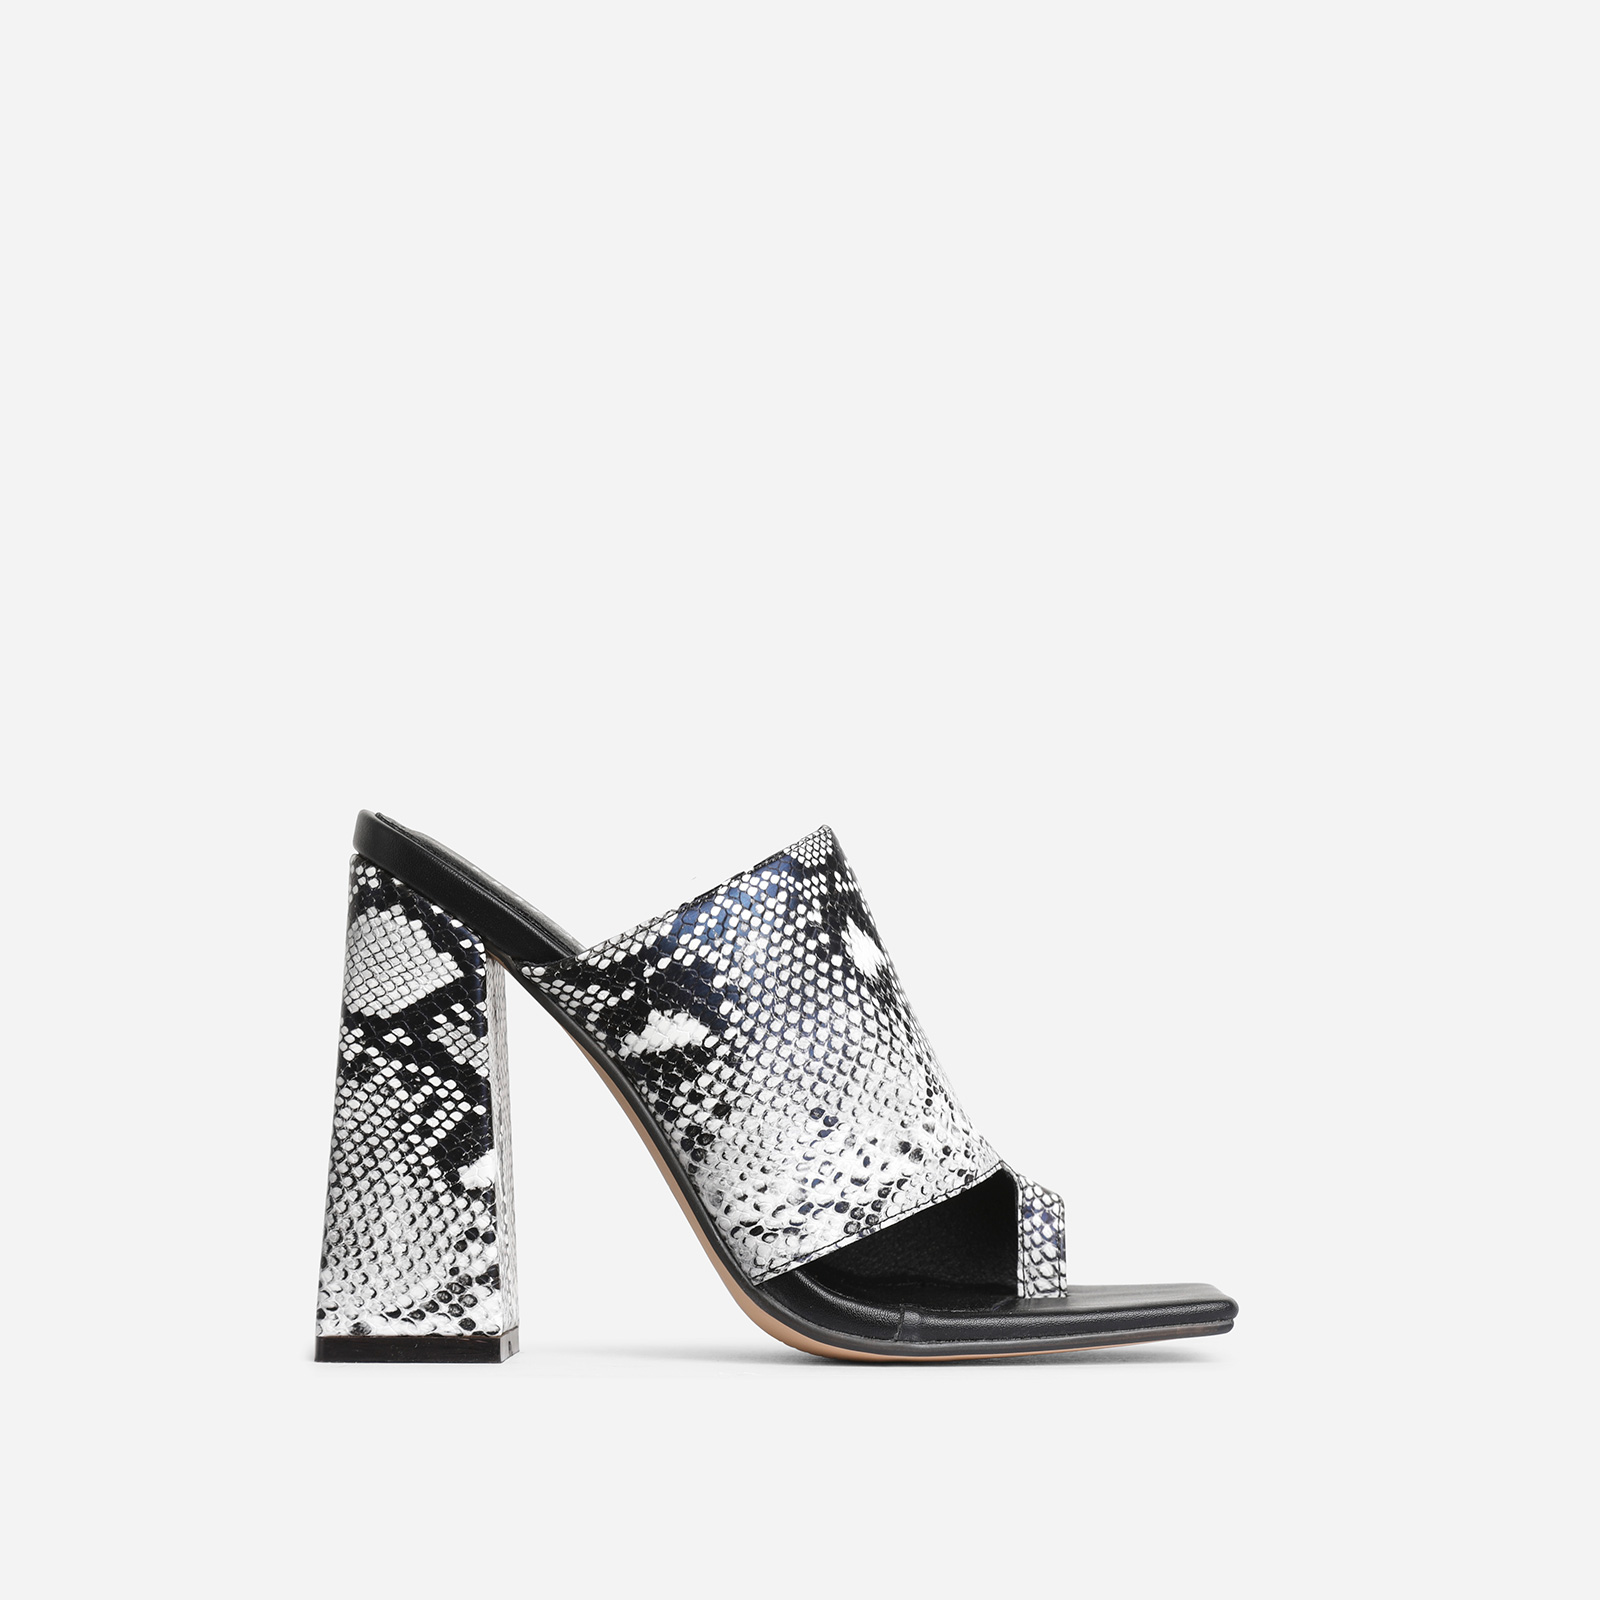 Anfo Square Peep Toe Flared Block Heel Mule In Grey Snake Print Faux Leather